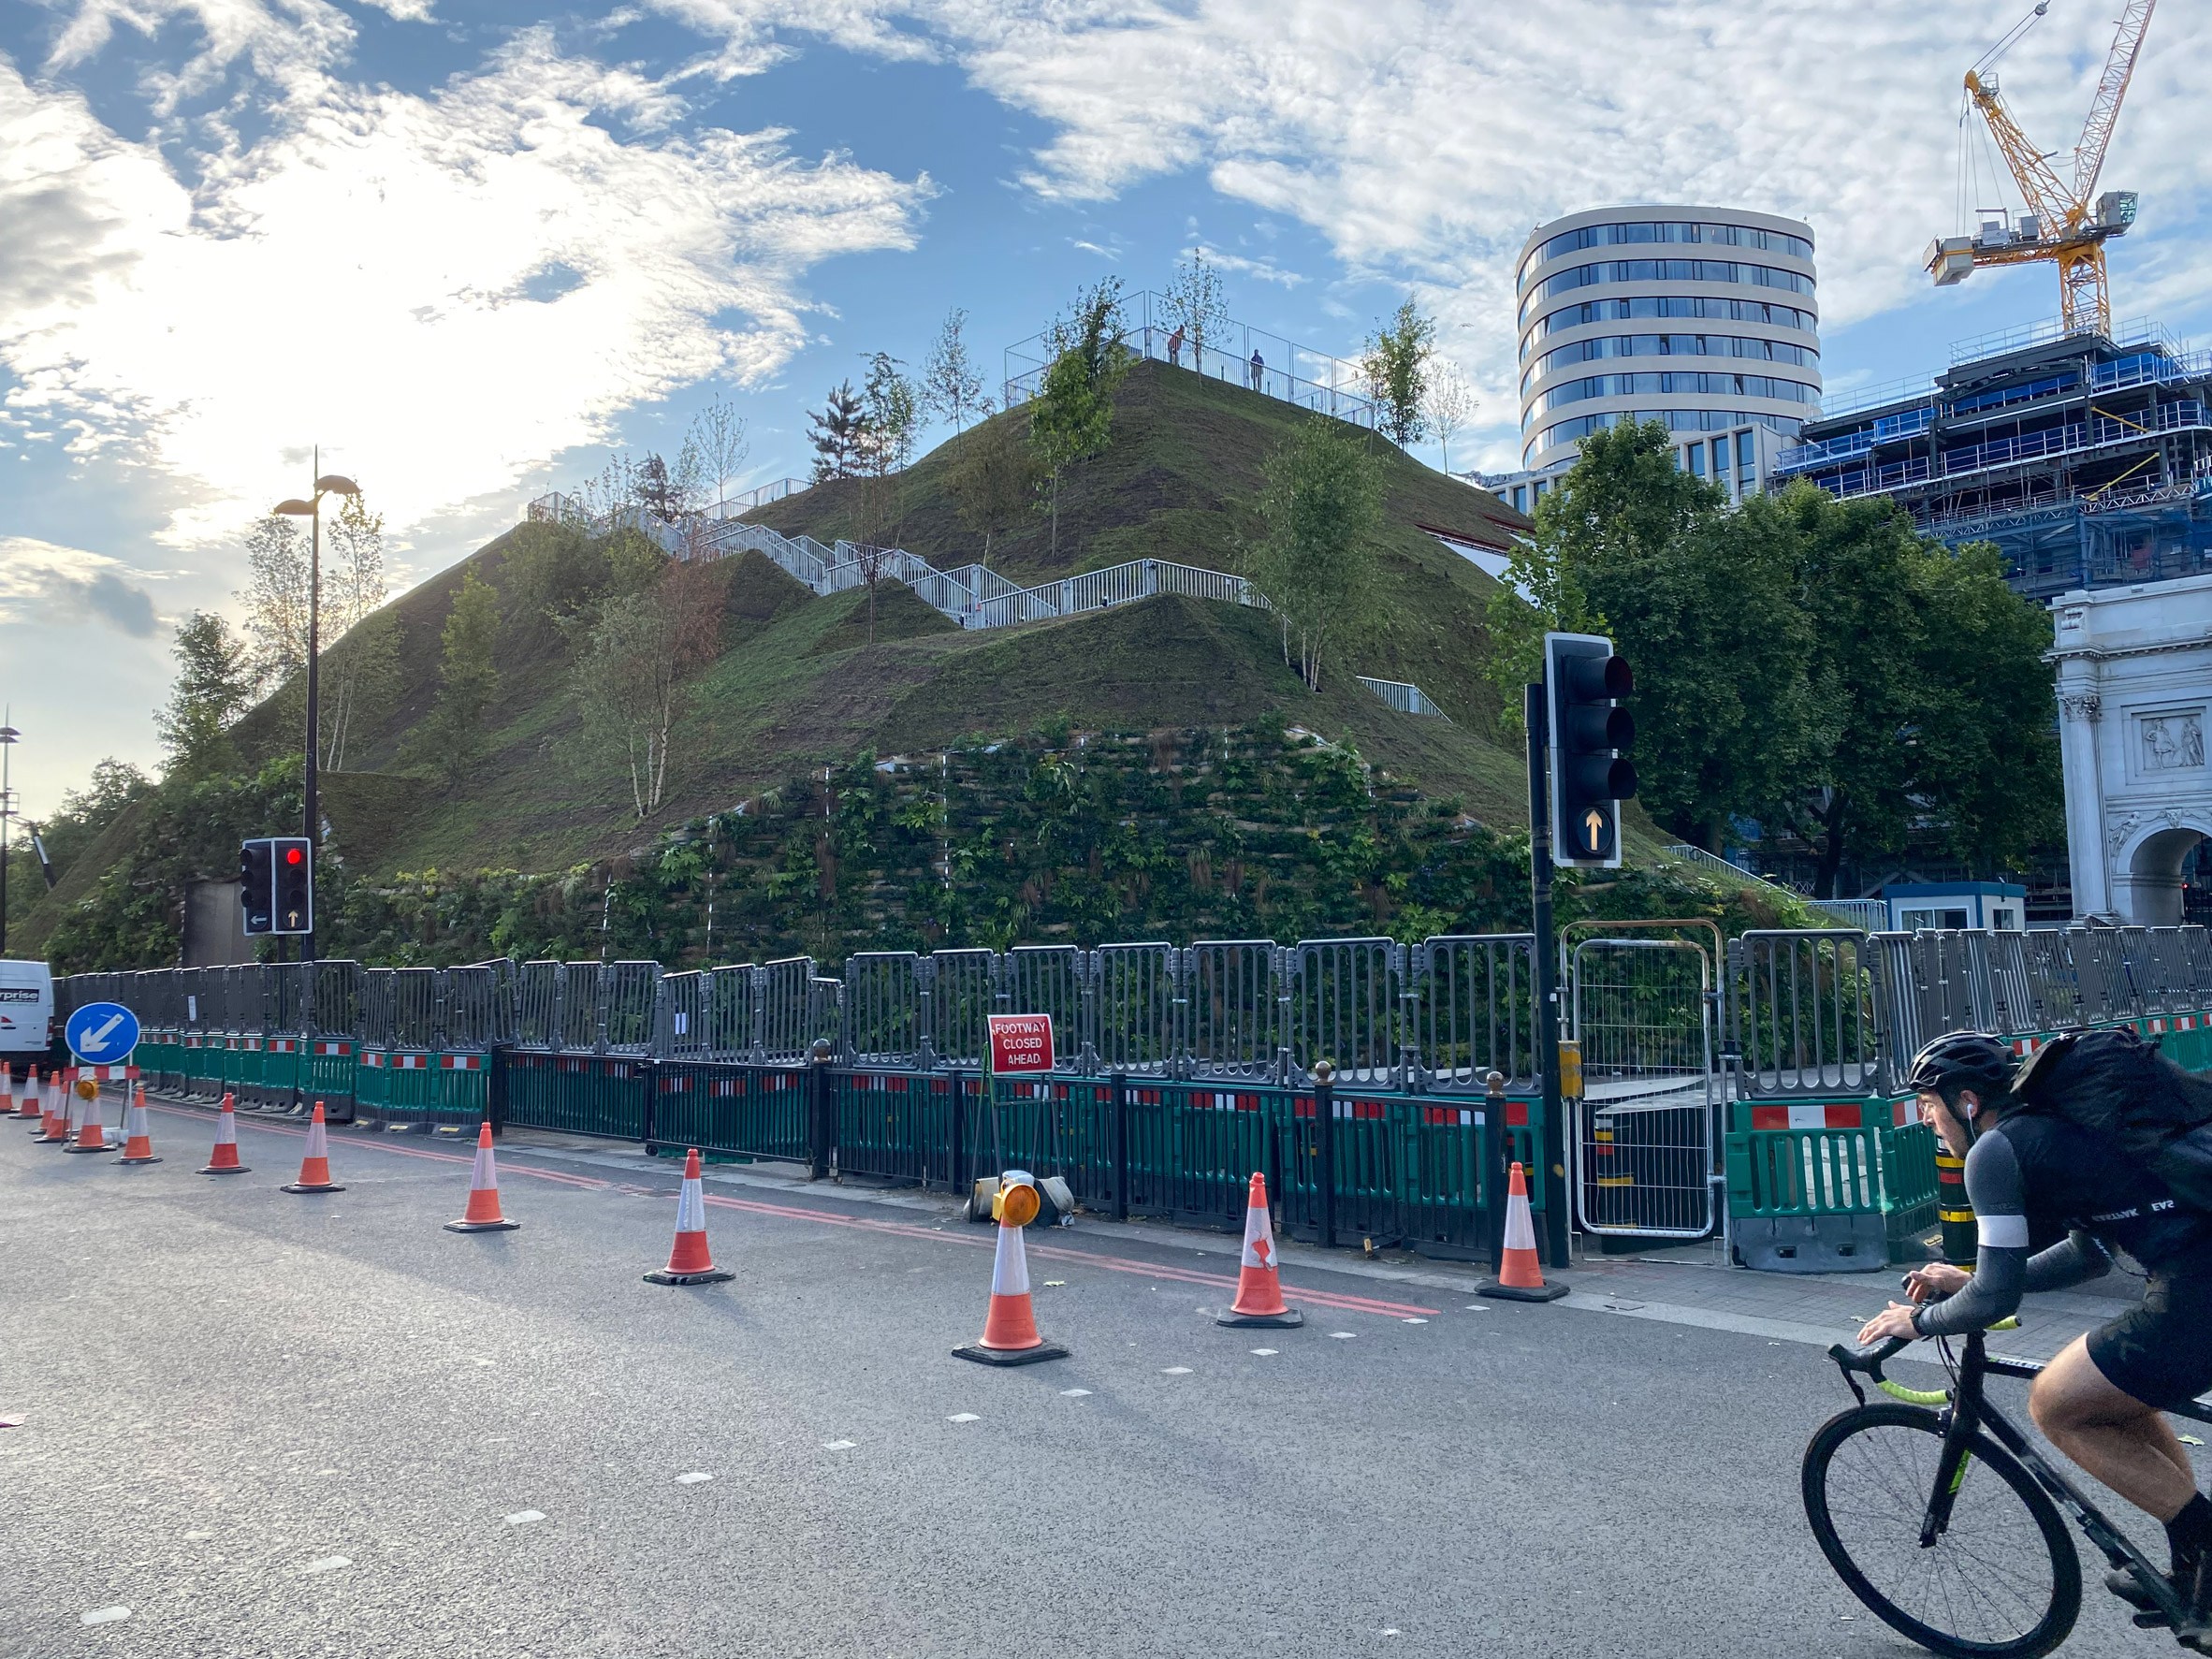 Artificial hill by Marble Arch